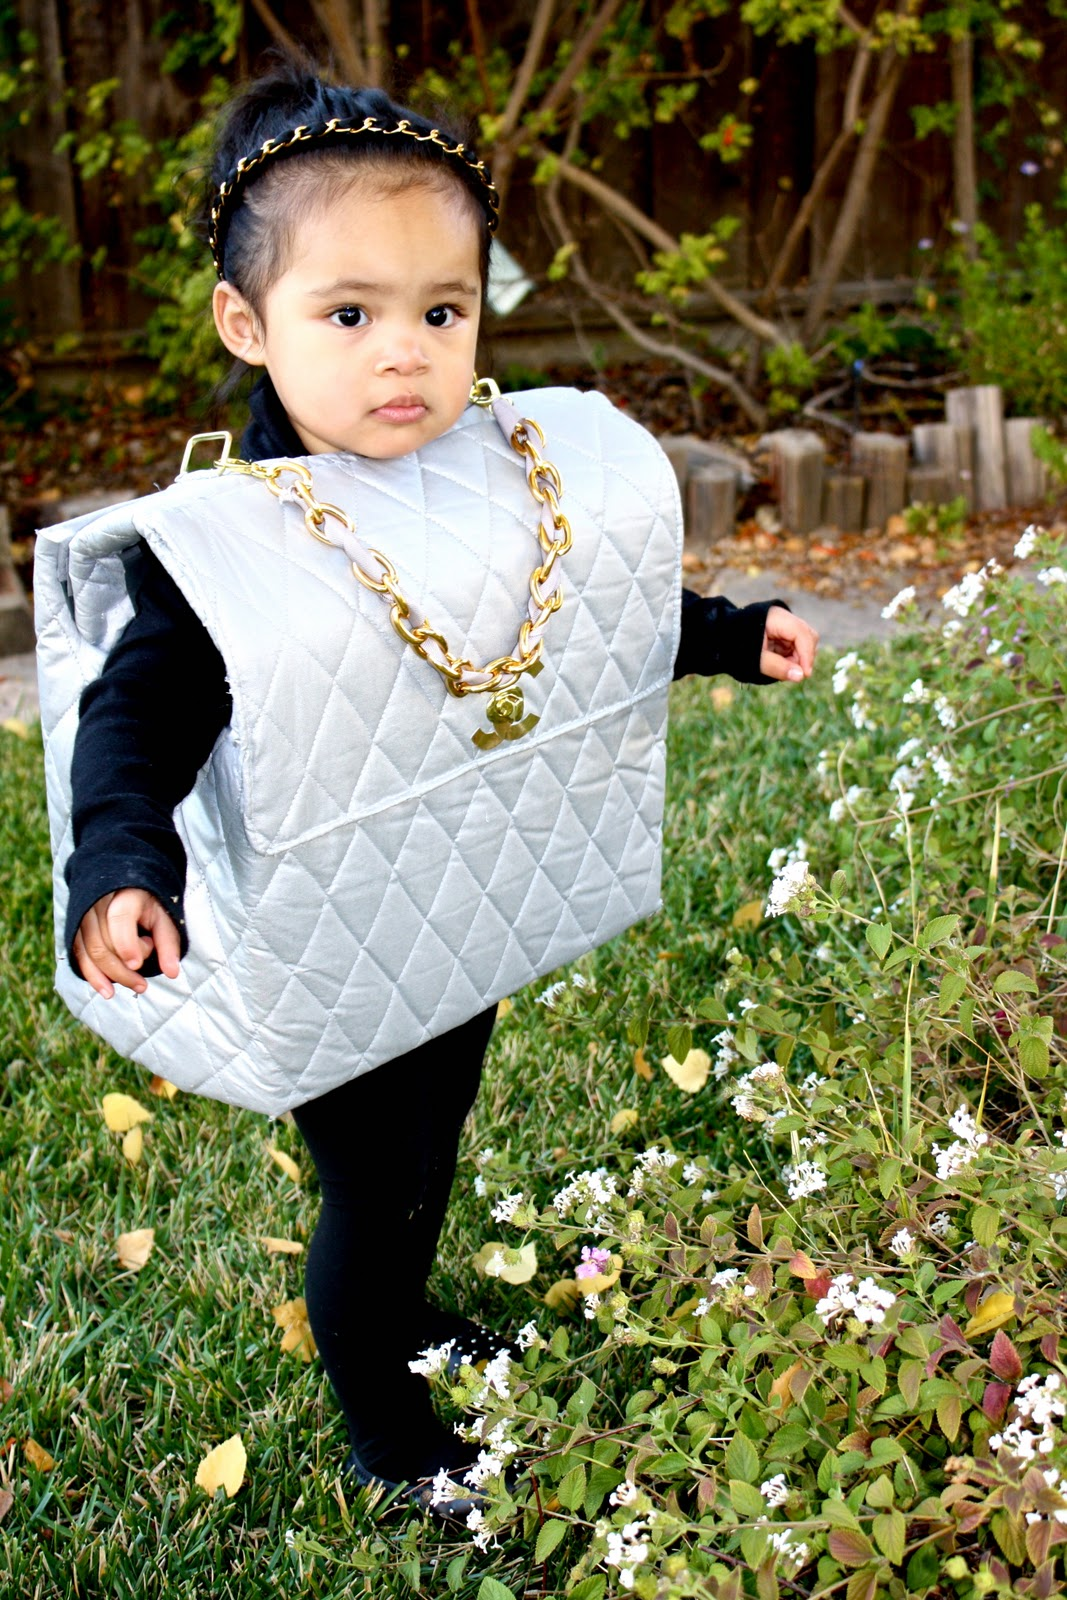 24bcb55afa77 Chanel Handbag Costume | Stanford Center for Opportunity Policy in ...